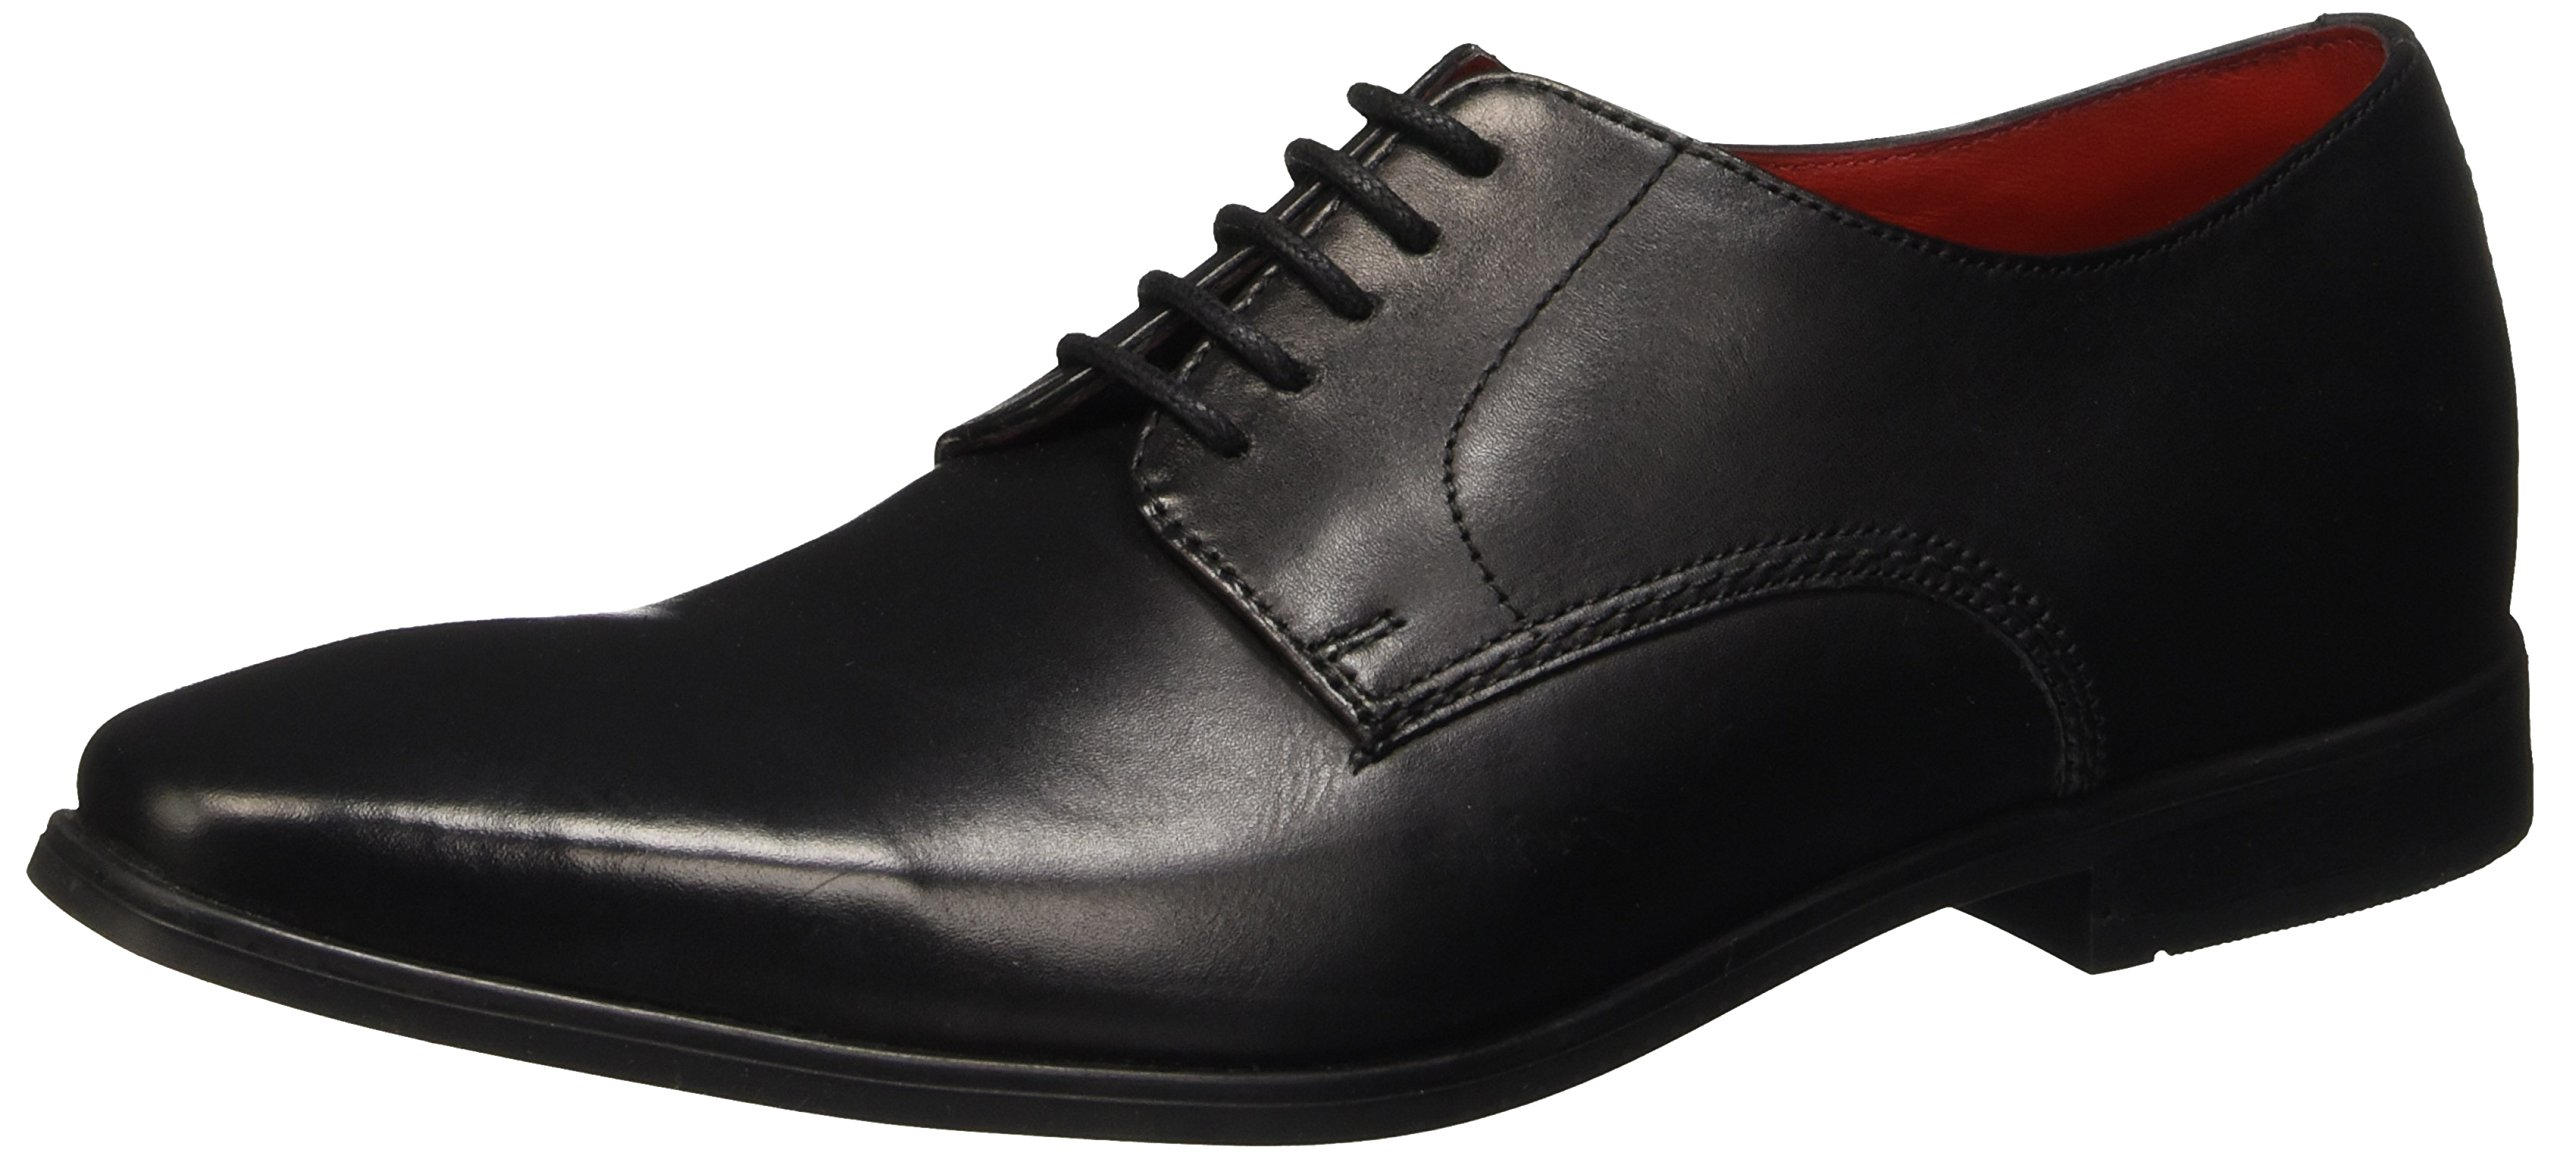 HommeNoirwaxy GeorgeChaussures London Black44 Base Lacées Eu Fl1TcKJ3